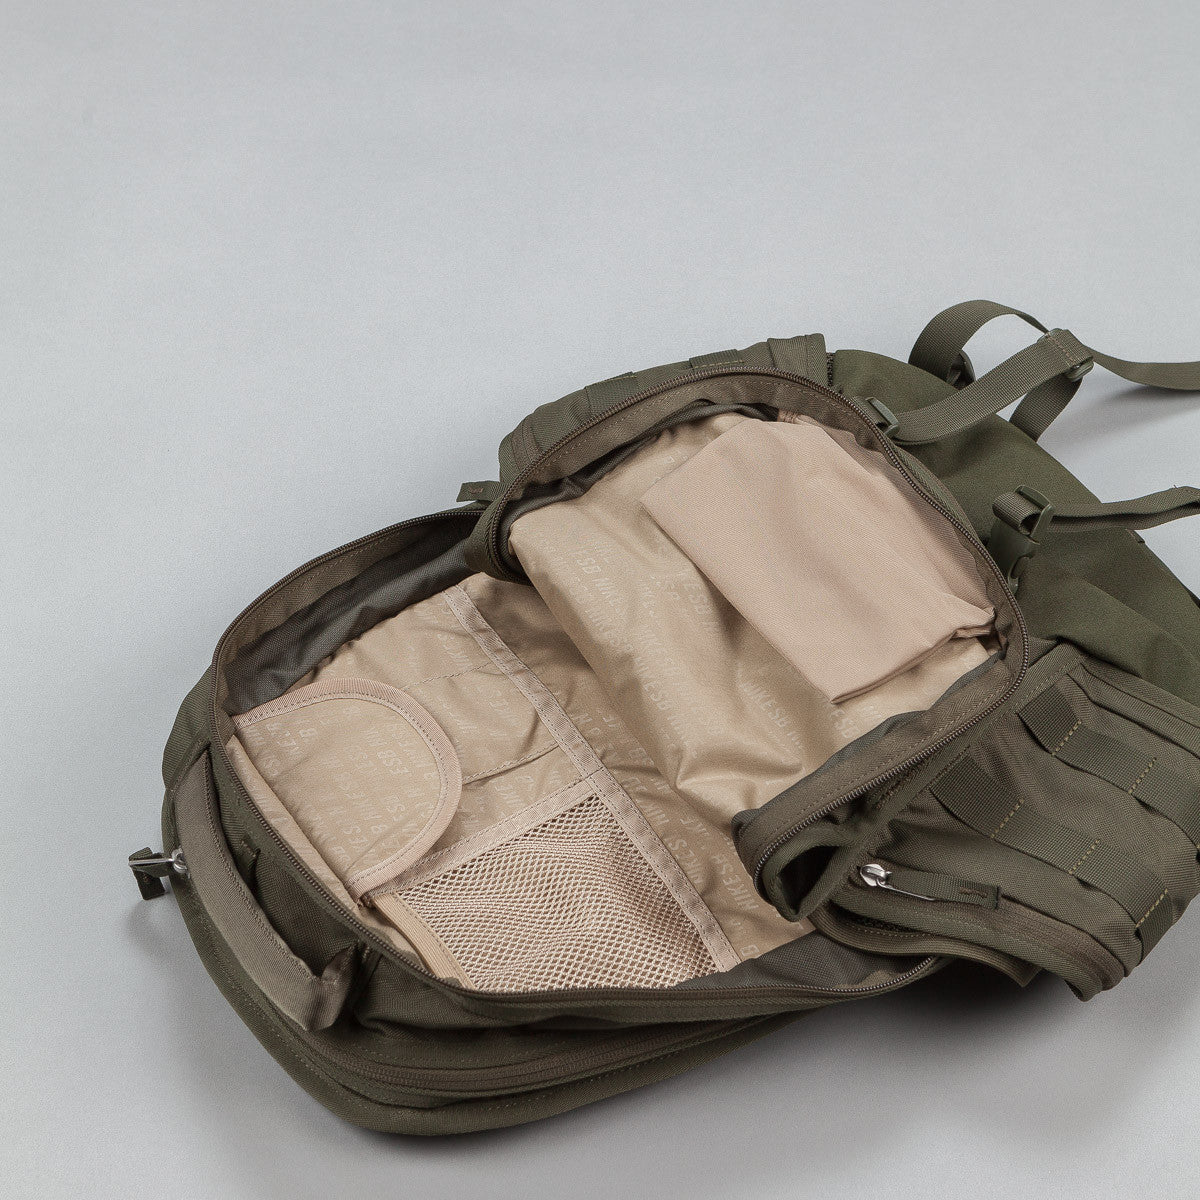 Nike SB RPM Backpack - Cargo Khaki / Cargo Khaki / Black